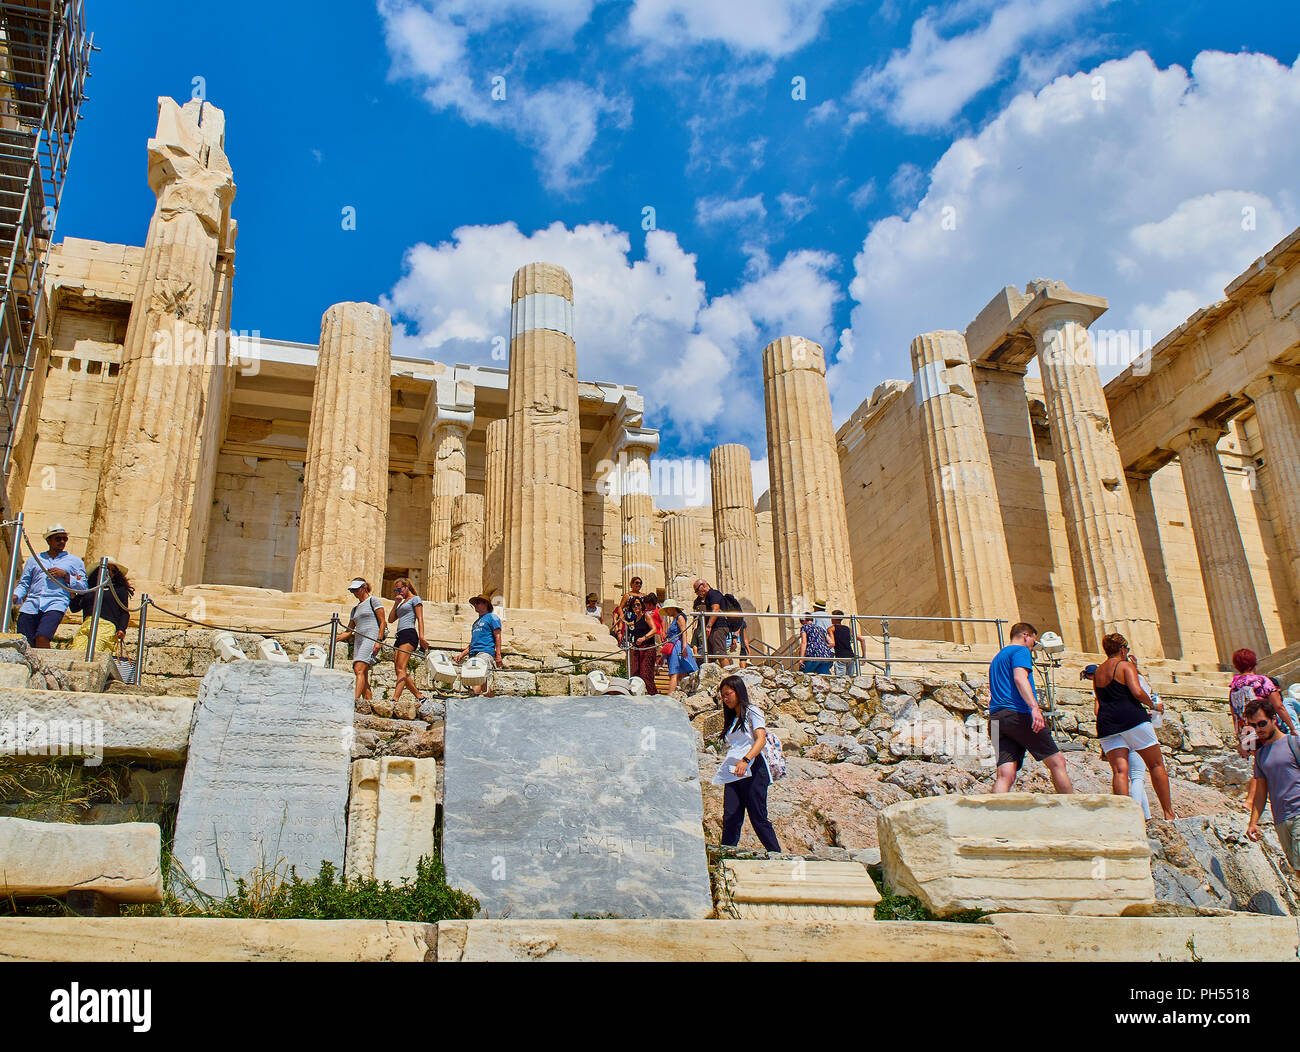 Athens, Greece - July 1, 2018. Tourists crossing the western side of Propylaea, the ancient gateway to the Athenian Acropolis. Athens. Attica, Greece. - Stock Image